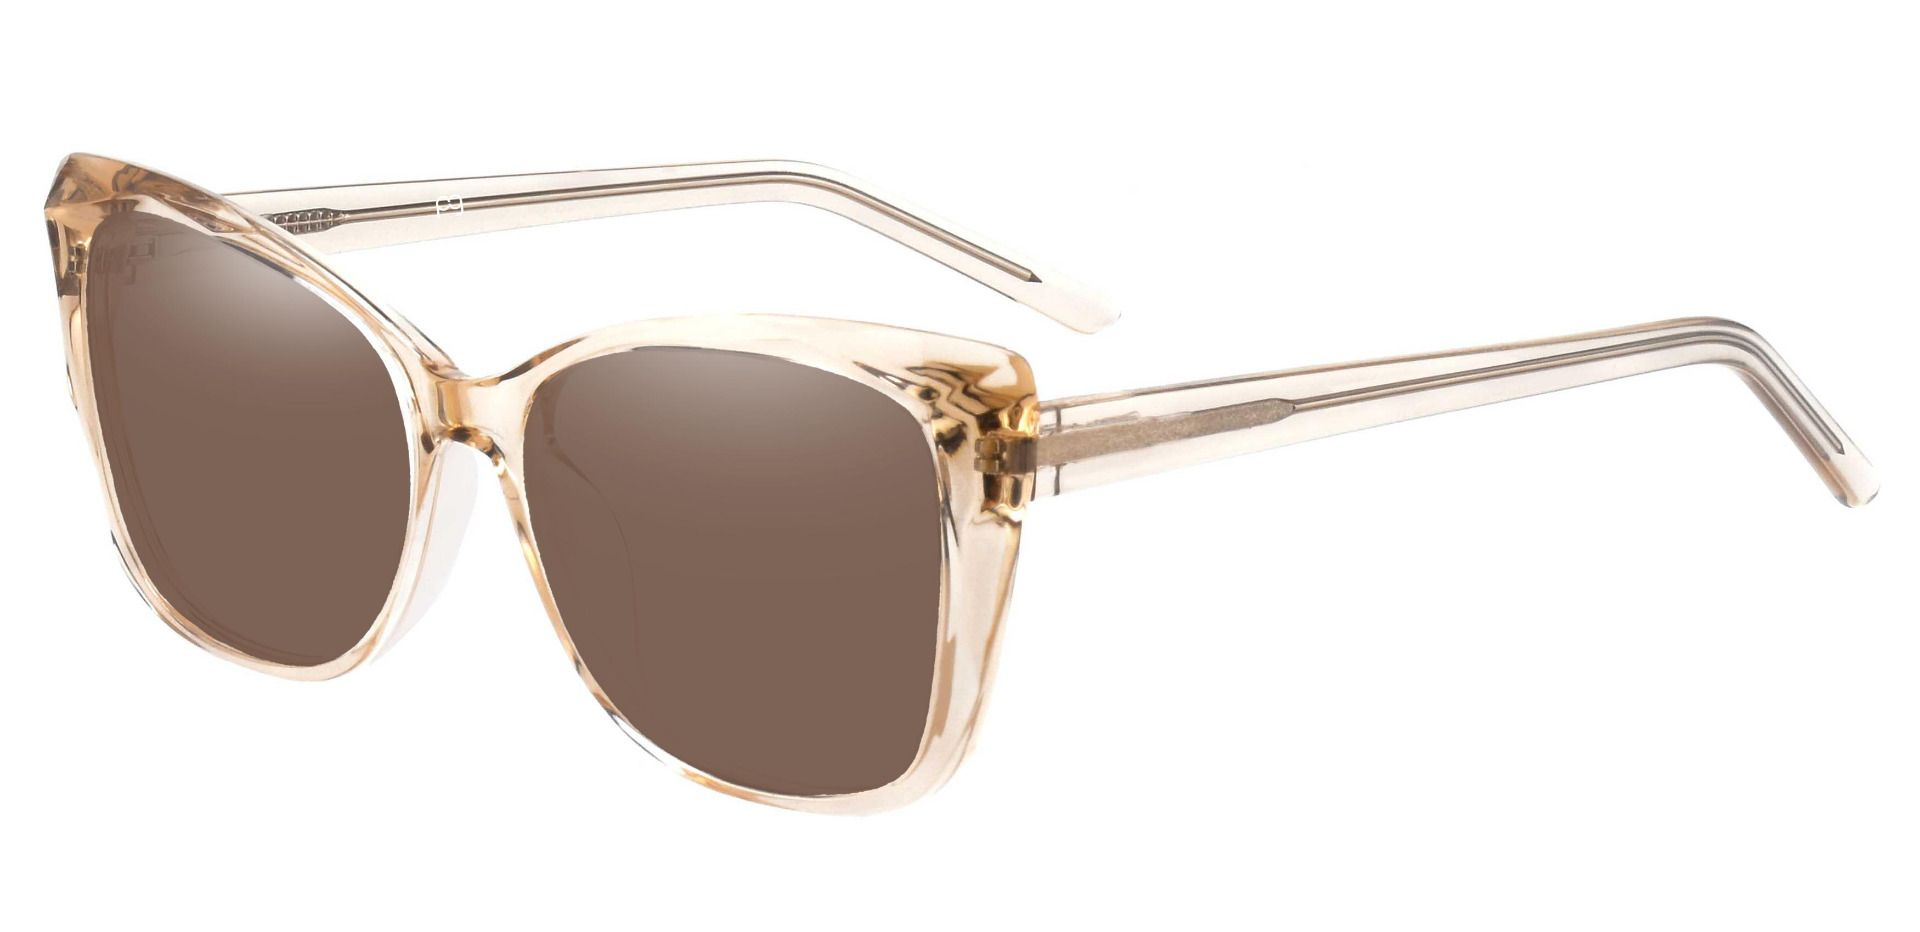 Mabel Square Non-Rx Sunglasses - Brown Frame With Brown Lenses